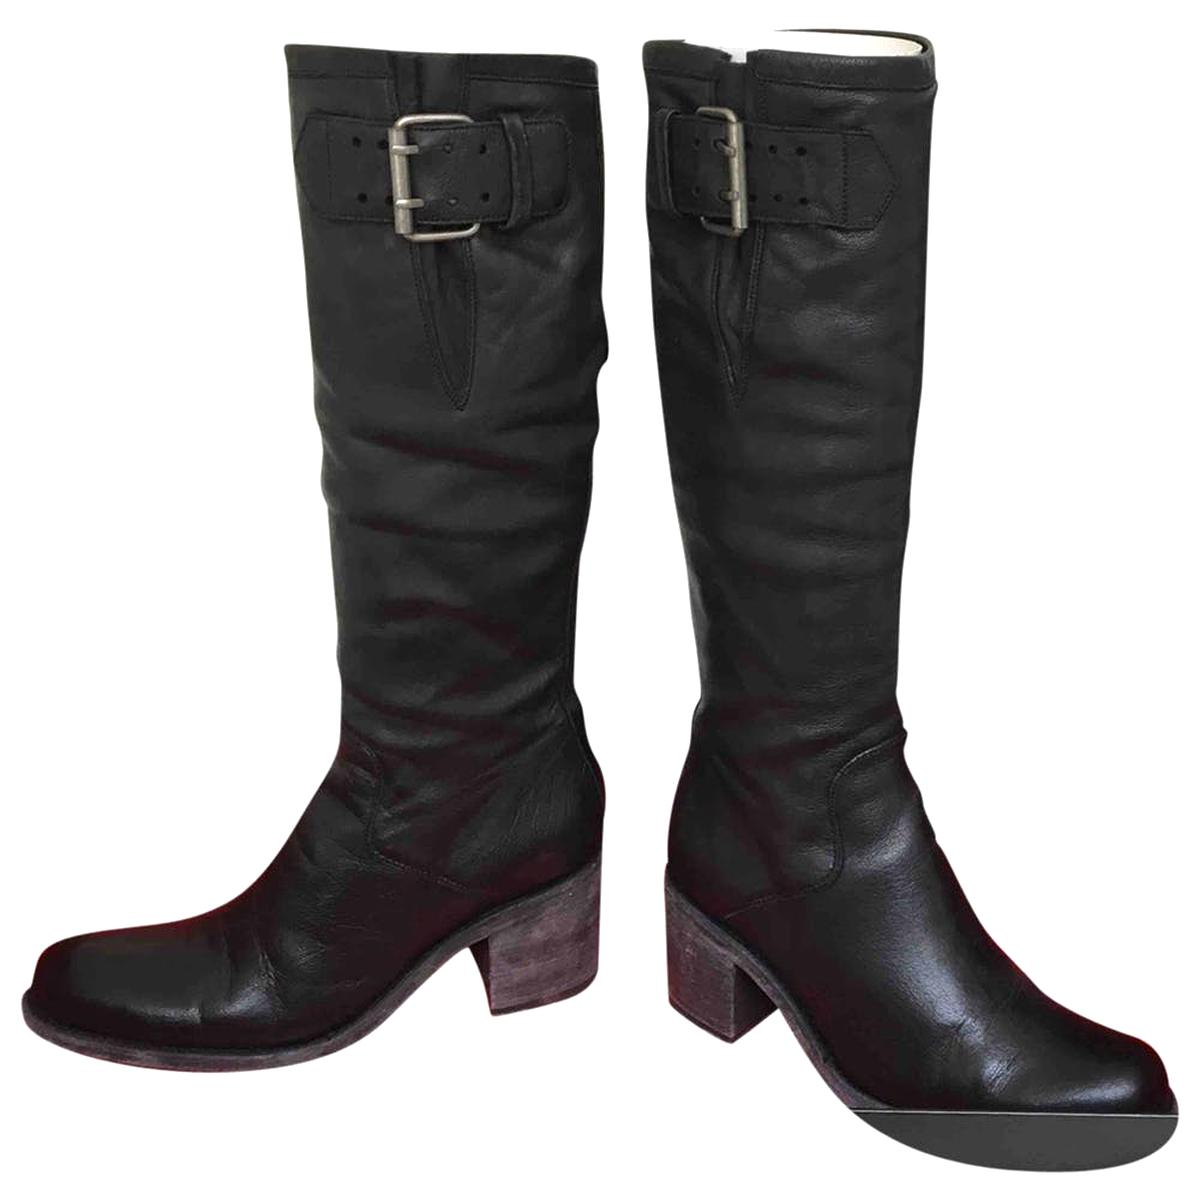 Free Lance 37 Lance Boots Free d'occasion 37 Boots J1lcF3TK